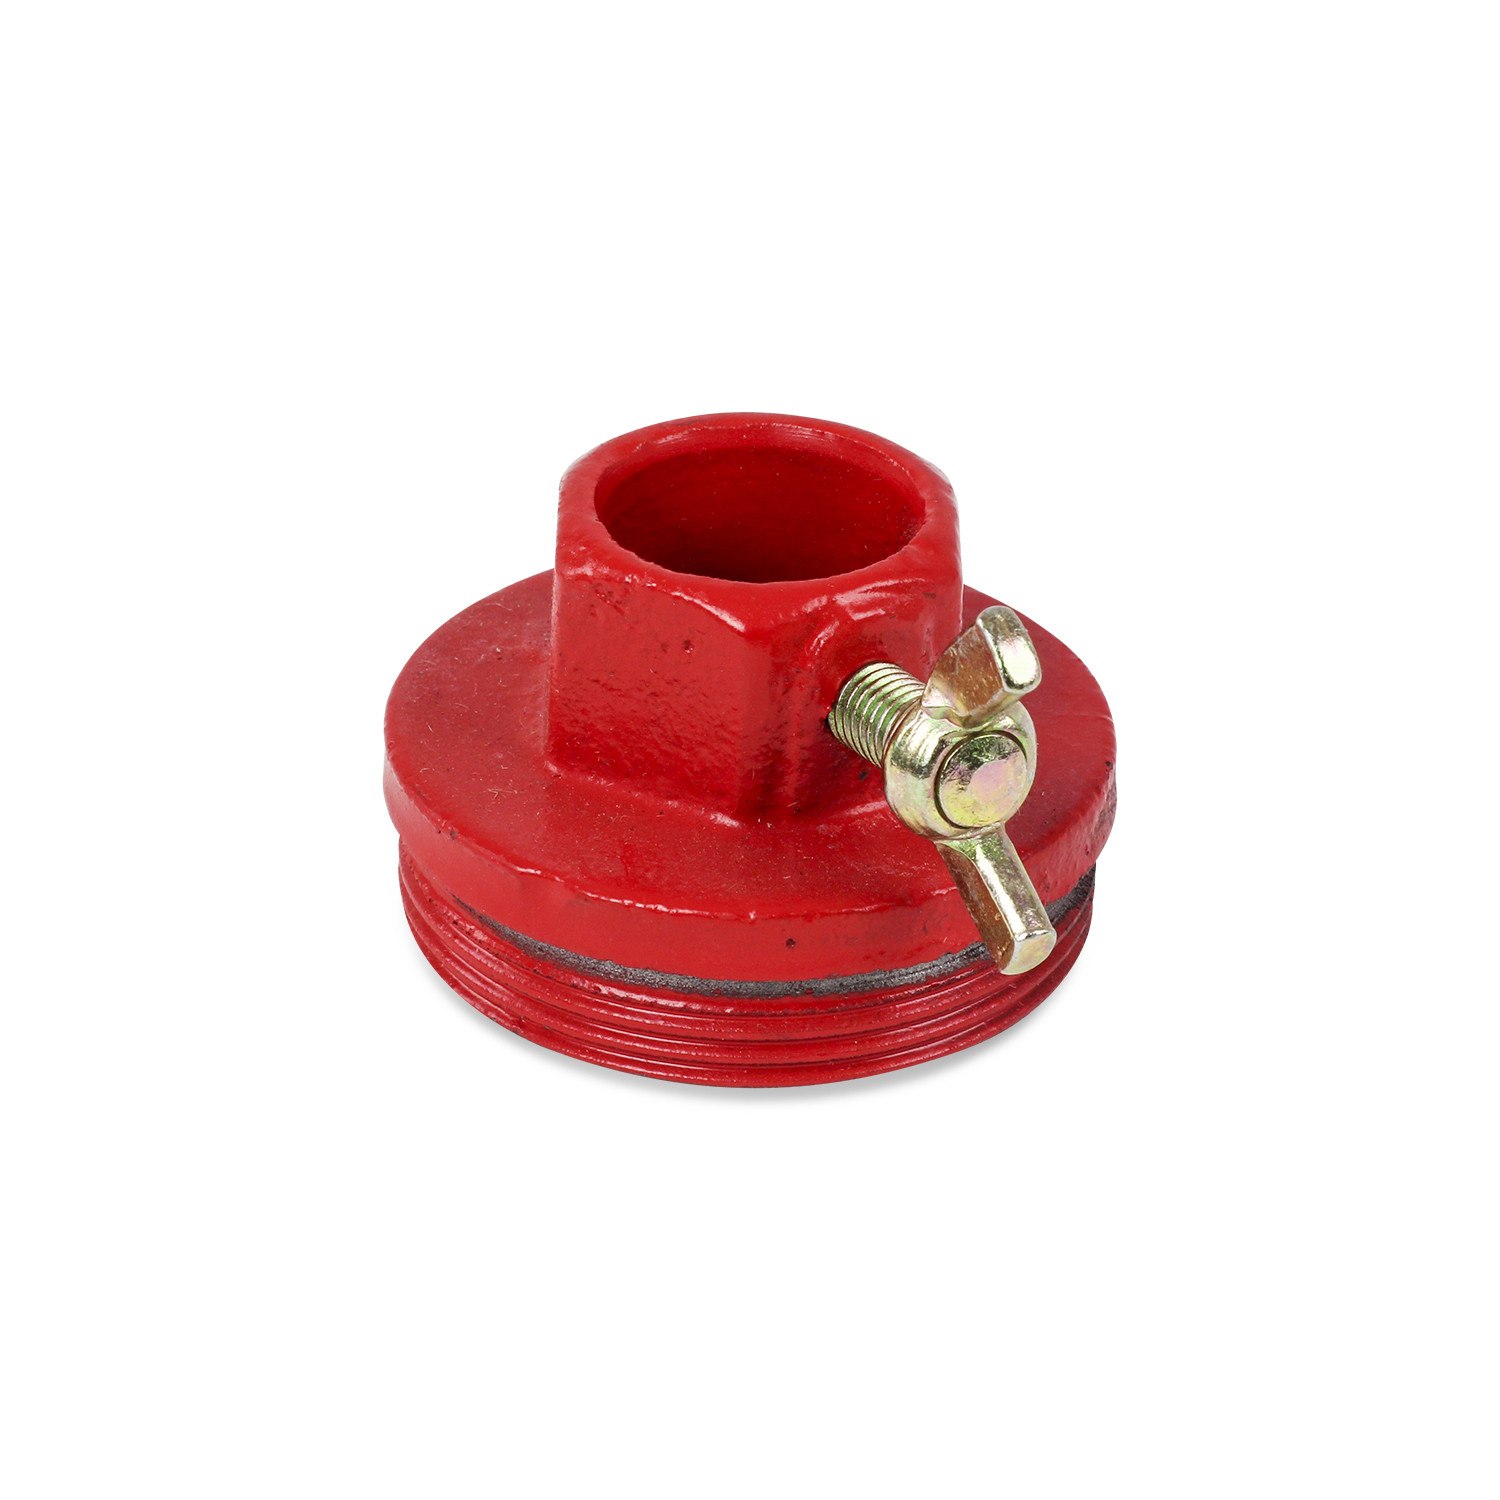 TERAPUMP - TRWS25-BA Red 2 Bung Adaptor for TRWS25 Rotary Hand Barrel Pump